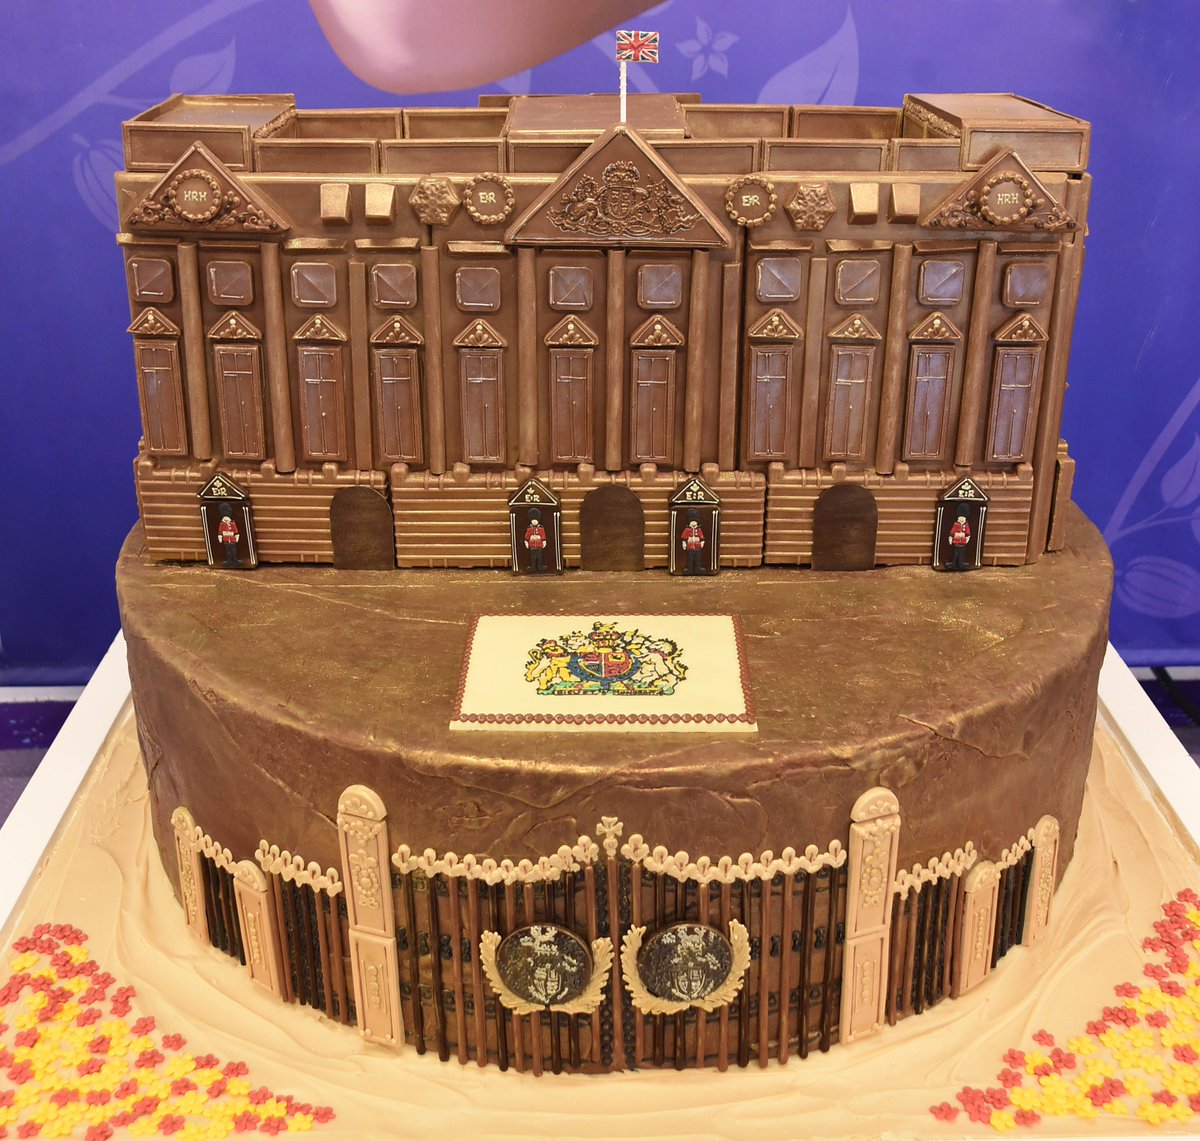 Check out our stunning chocolate replica of Buckingham Palace as we celebrate The #QueensBirthday #HMQ90 https://t.co/Y74F9UmE9z